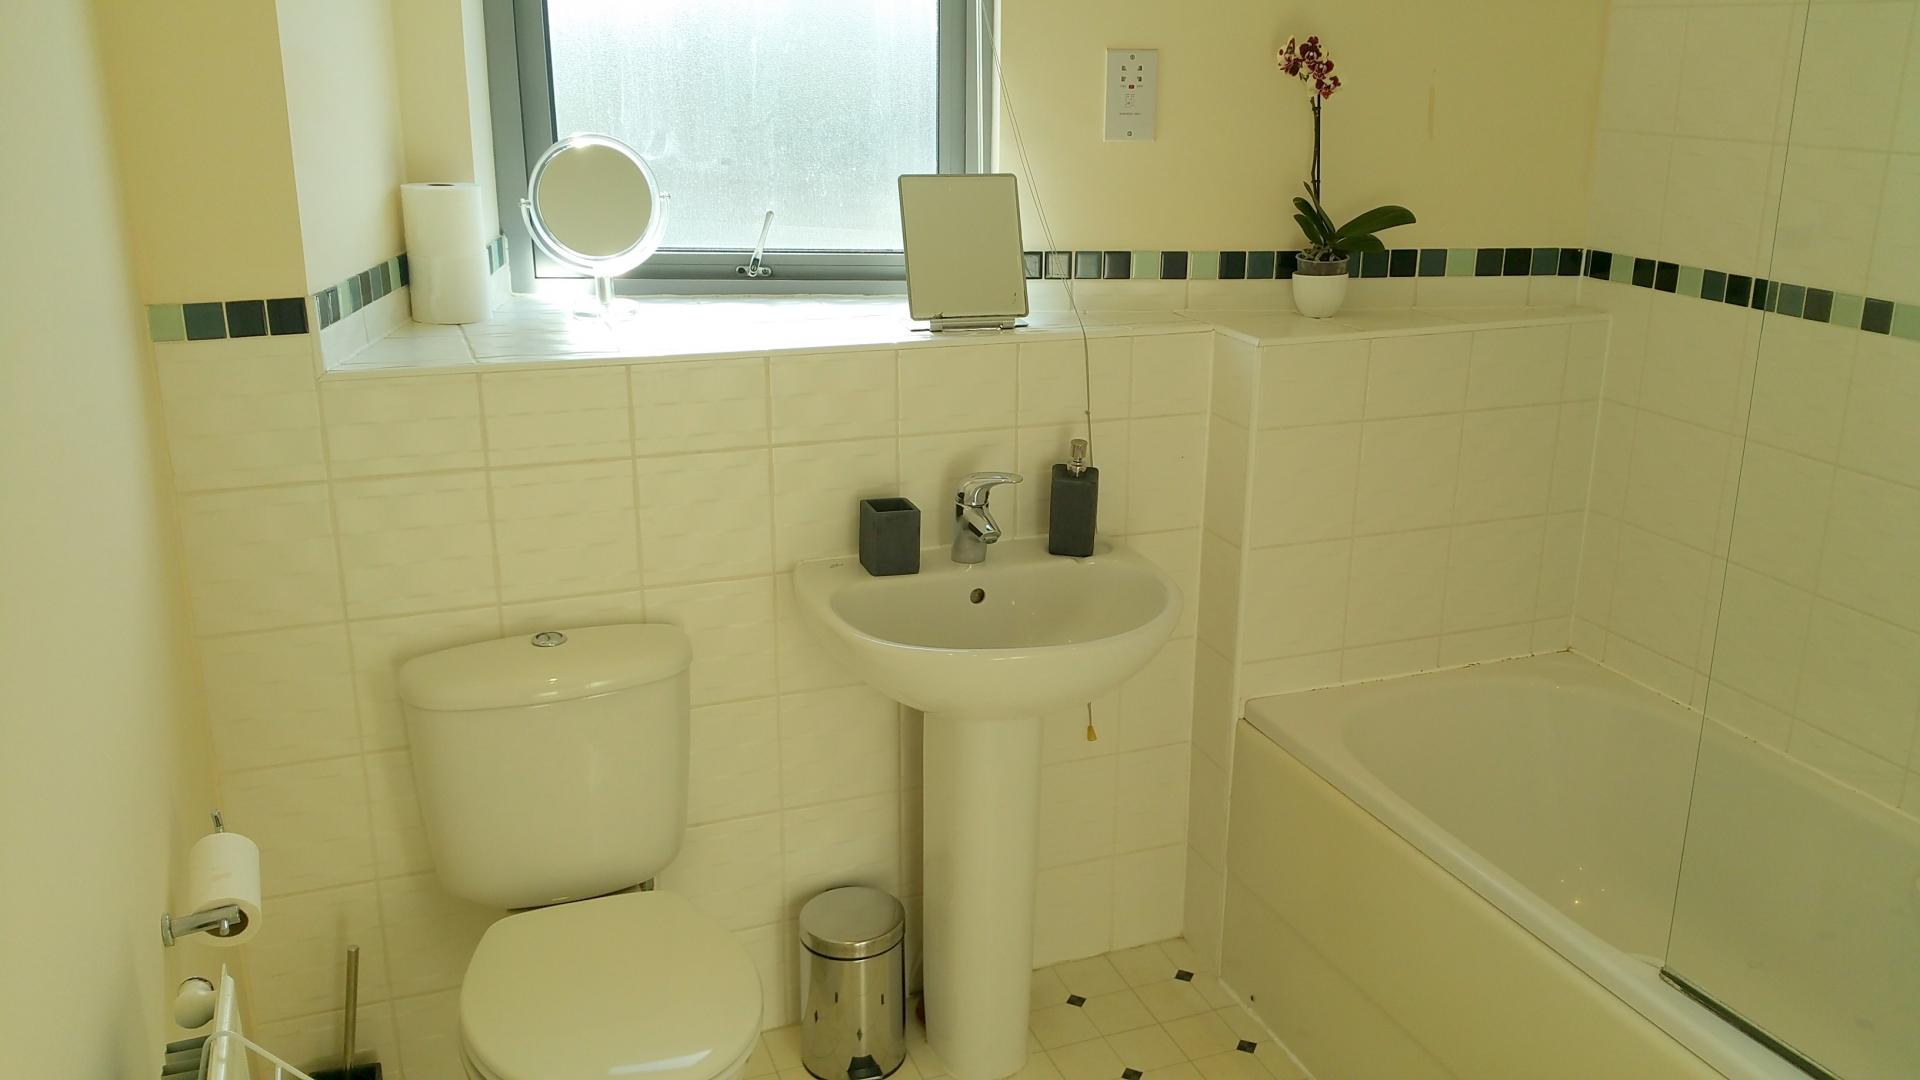 Bathroom at Central Station Apartment, Mill Road, Cambridge - Citybase Apartments